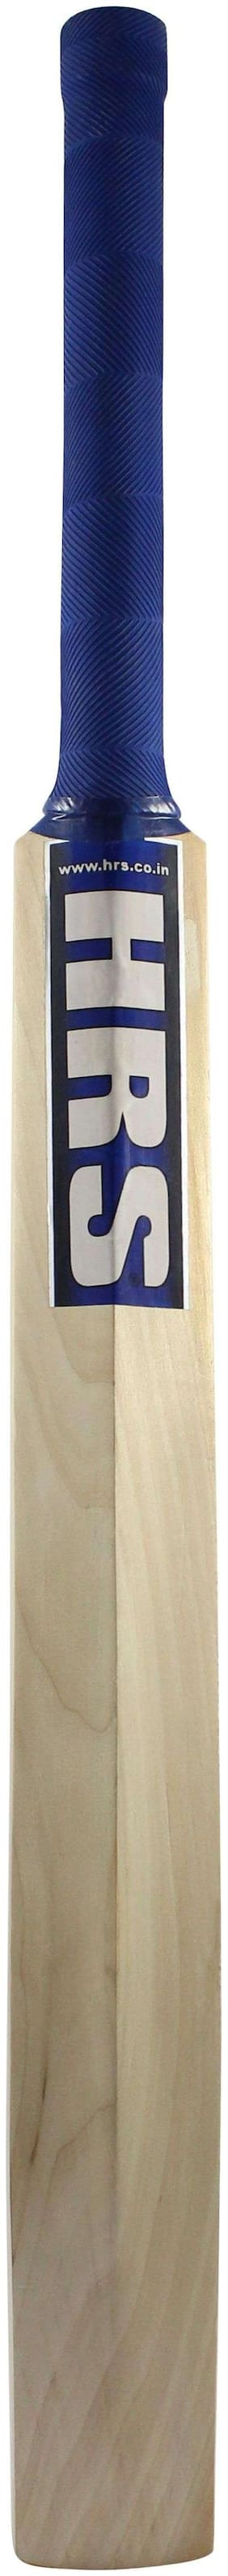 HRS Middling Bat (2.5 To 3 Width Blade For Optimum Batting Practice